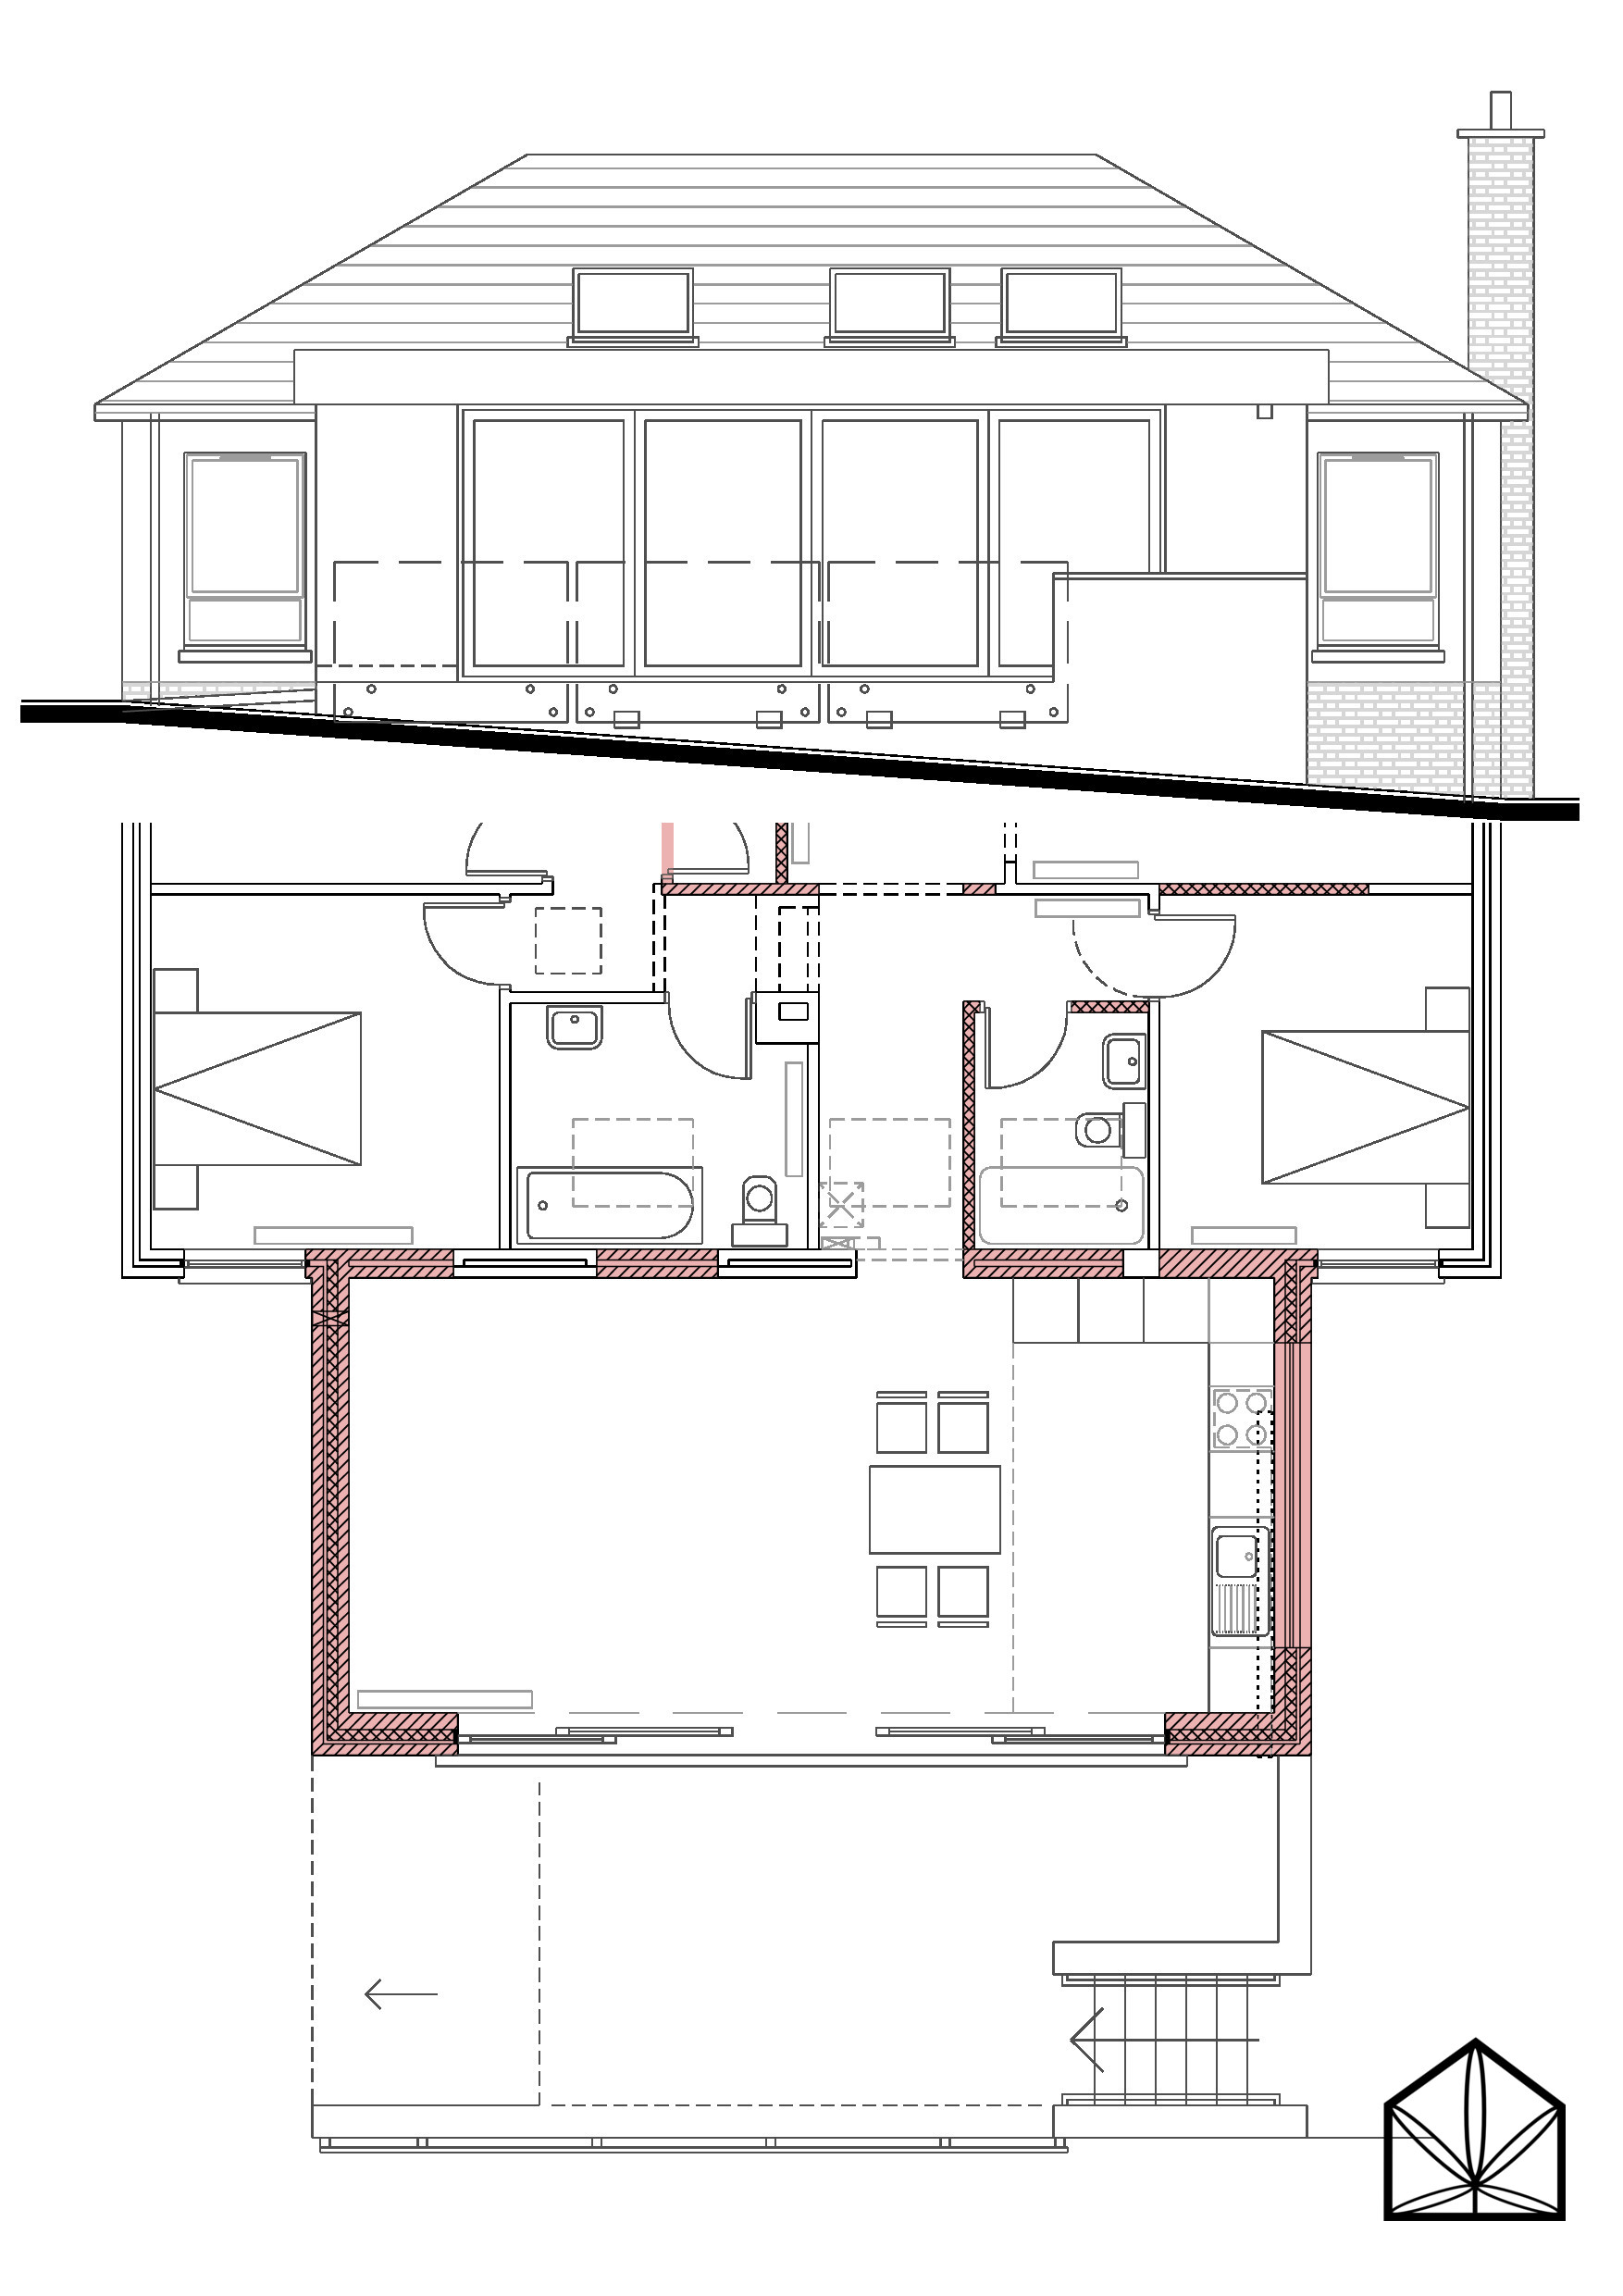 - modern style rear extension to detached dwelling in suburban part of County Down, Northern Ireland